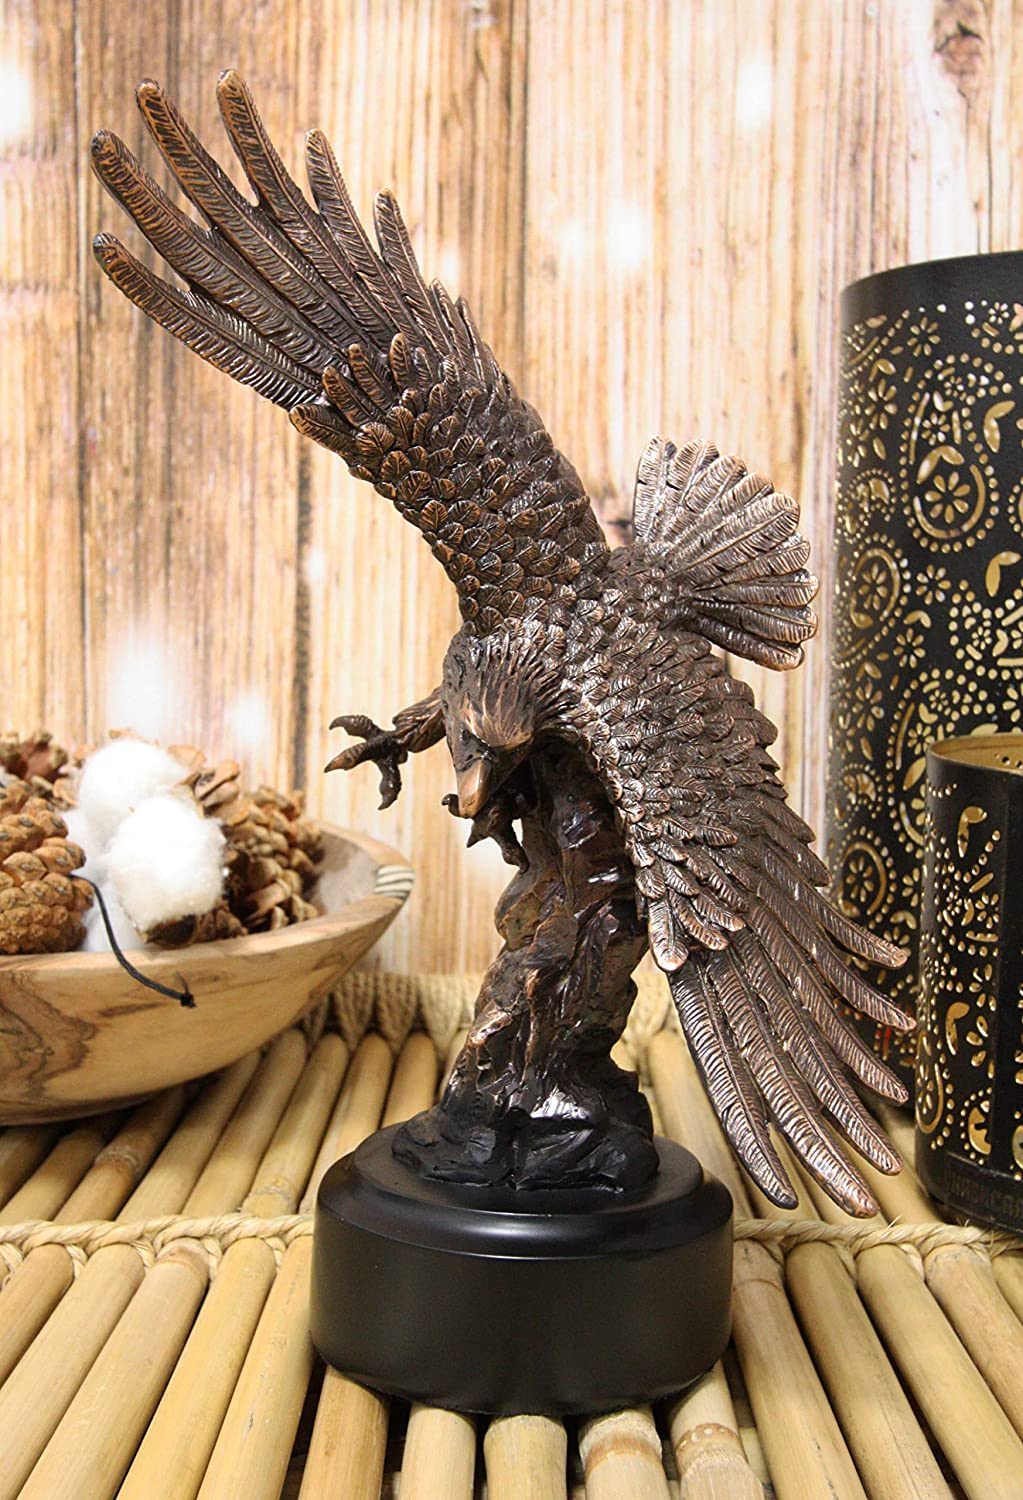 """Ebros 9.25"""" Tall Wings of Glory Swooping Broad Winged Bald Eagle by Cliff Rocks Statue Bronze Electroplated Resin Figurine with Base USA Patriotic Home and Office Decor Flying Wild Life Eagles"""